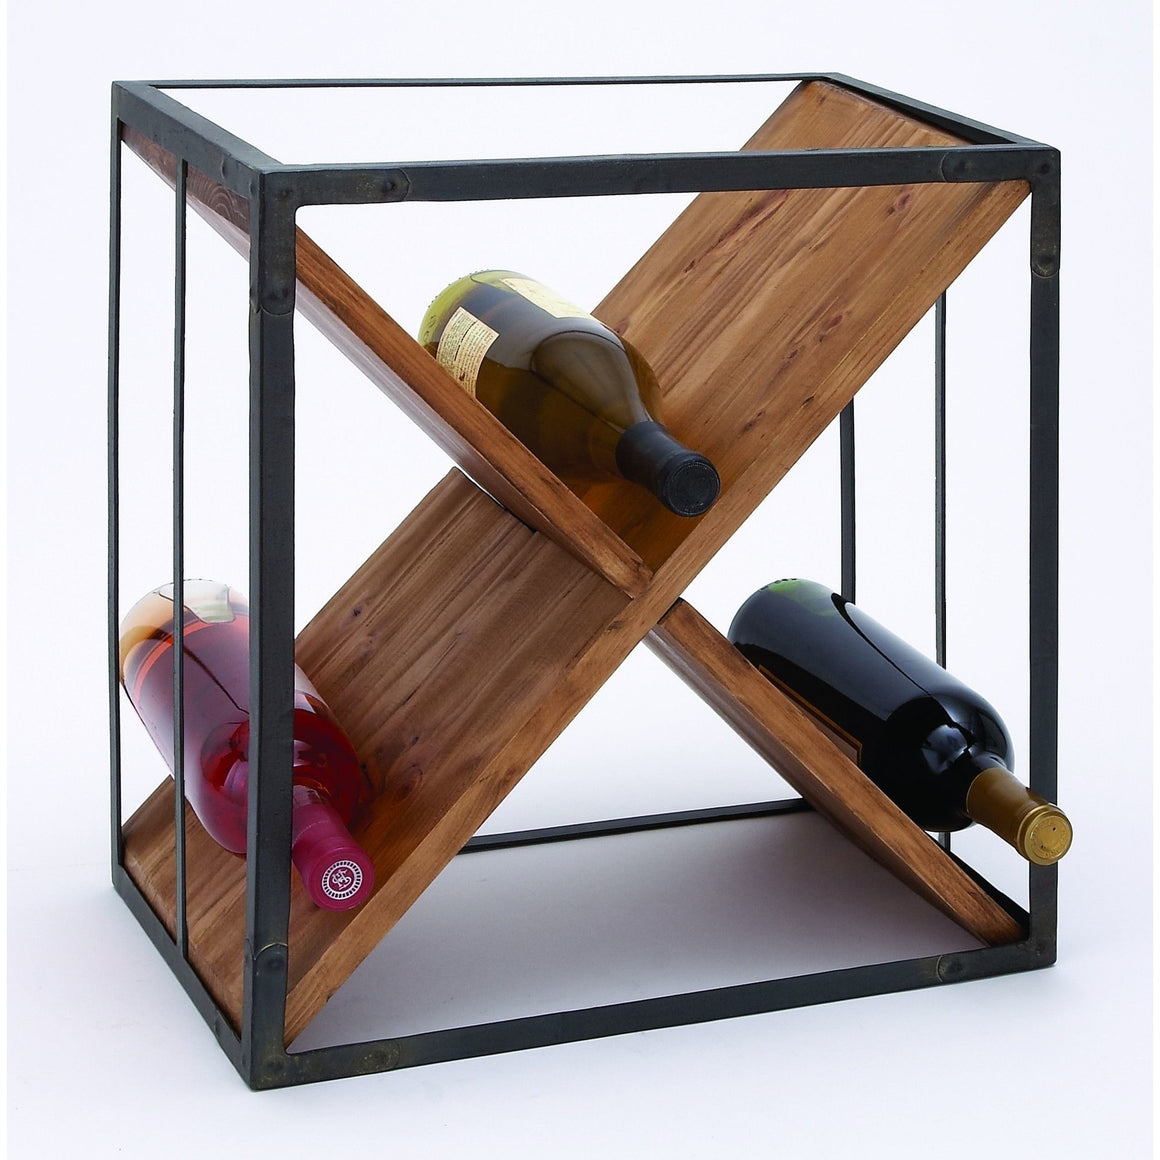 Benzara 63343 Sheet Metal Wood Wine Rack